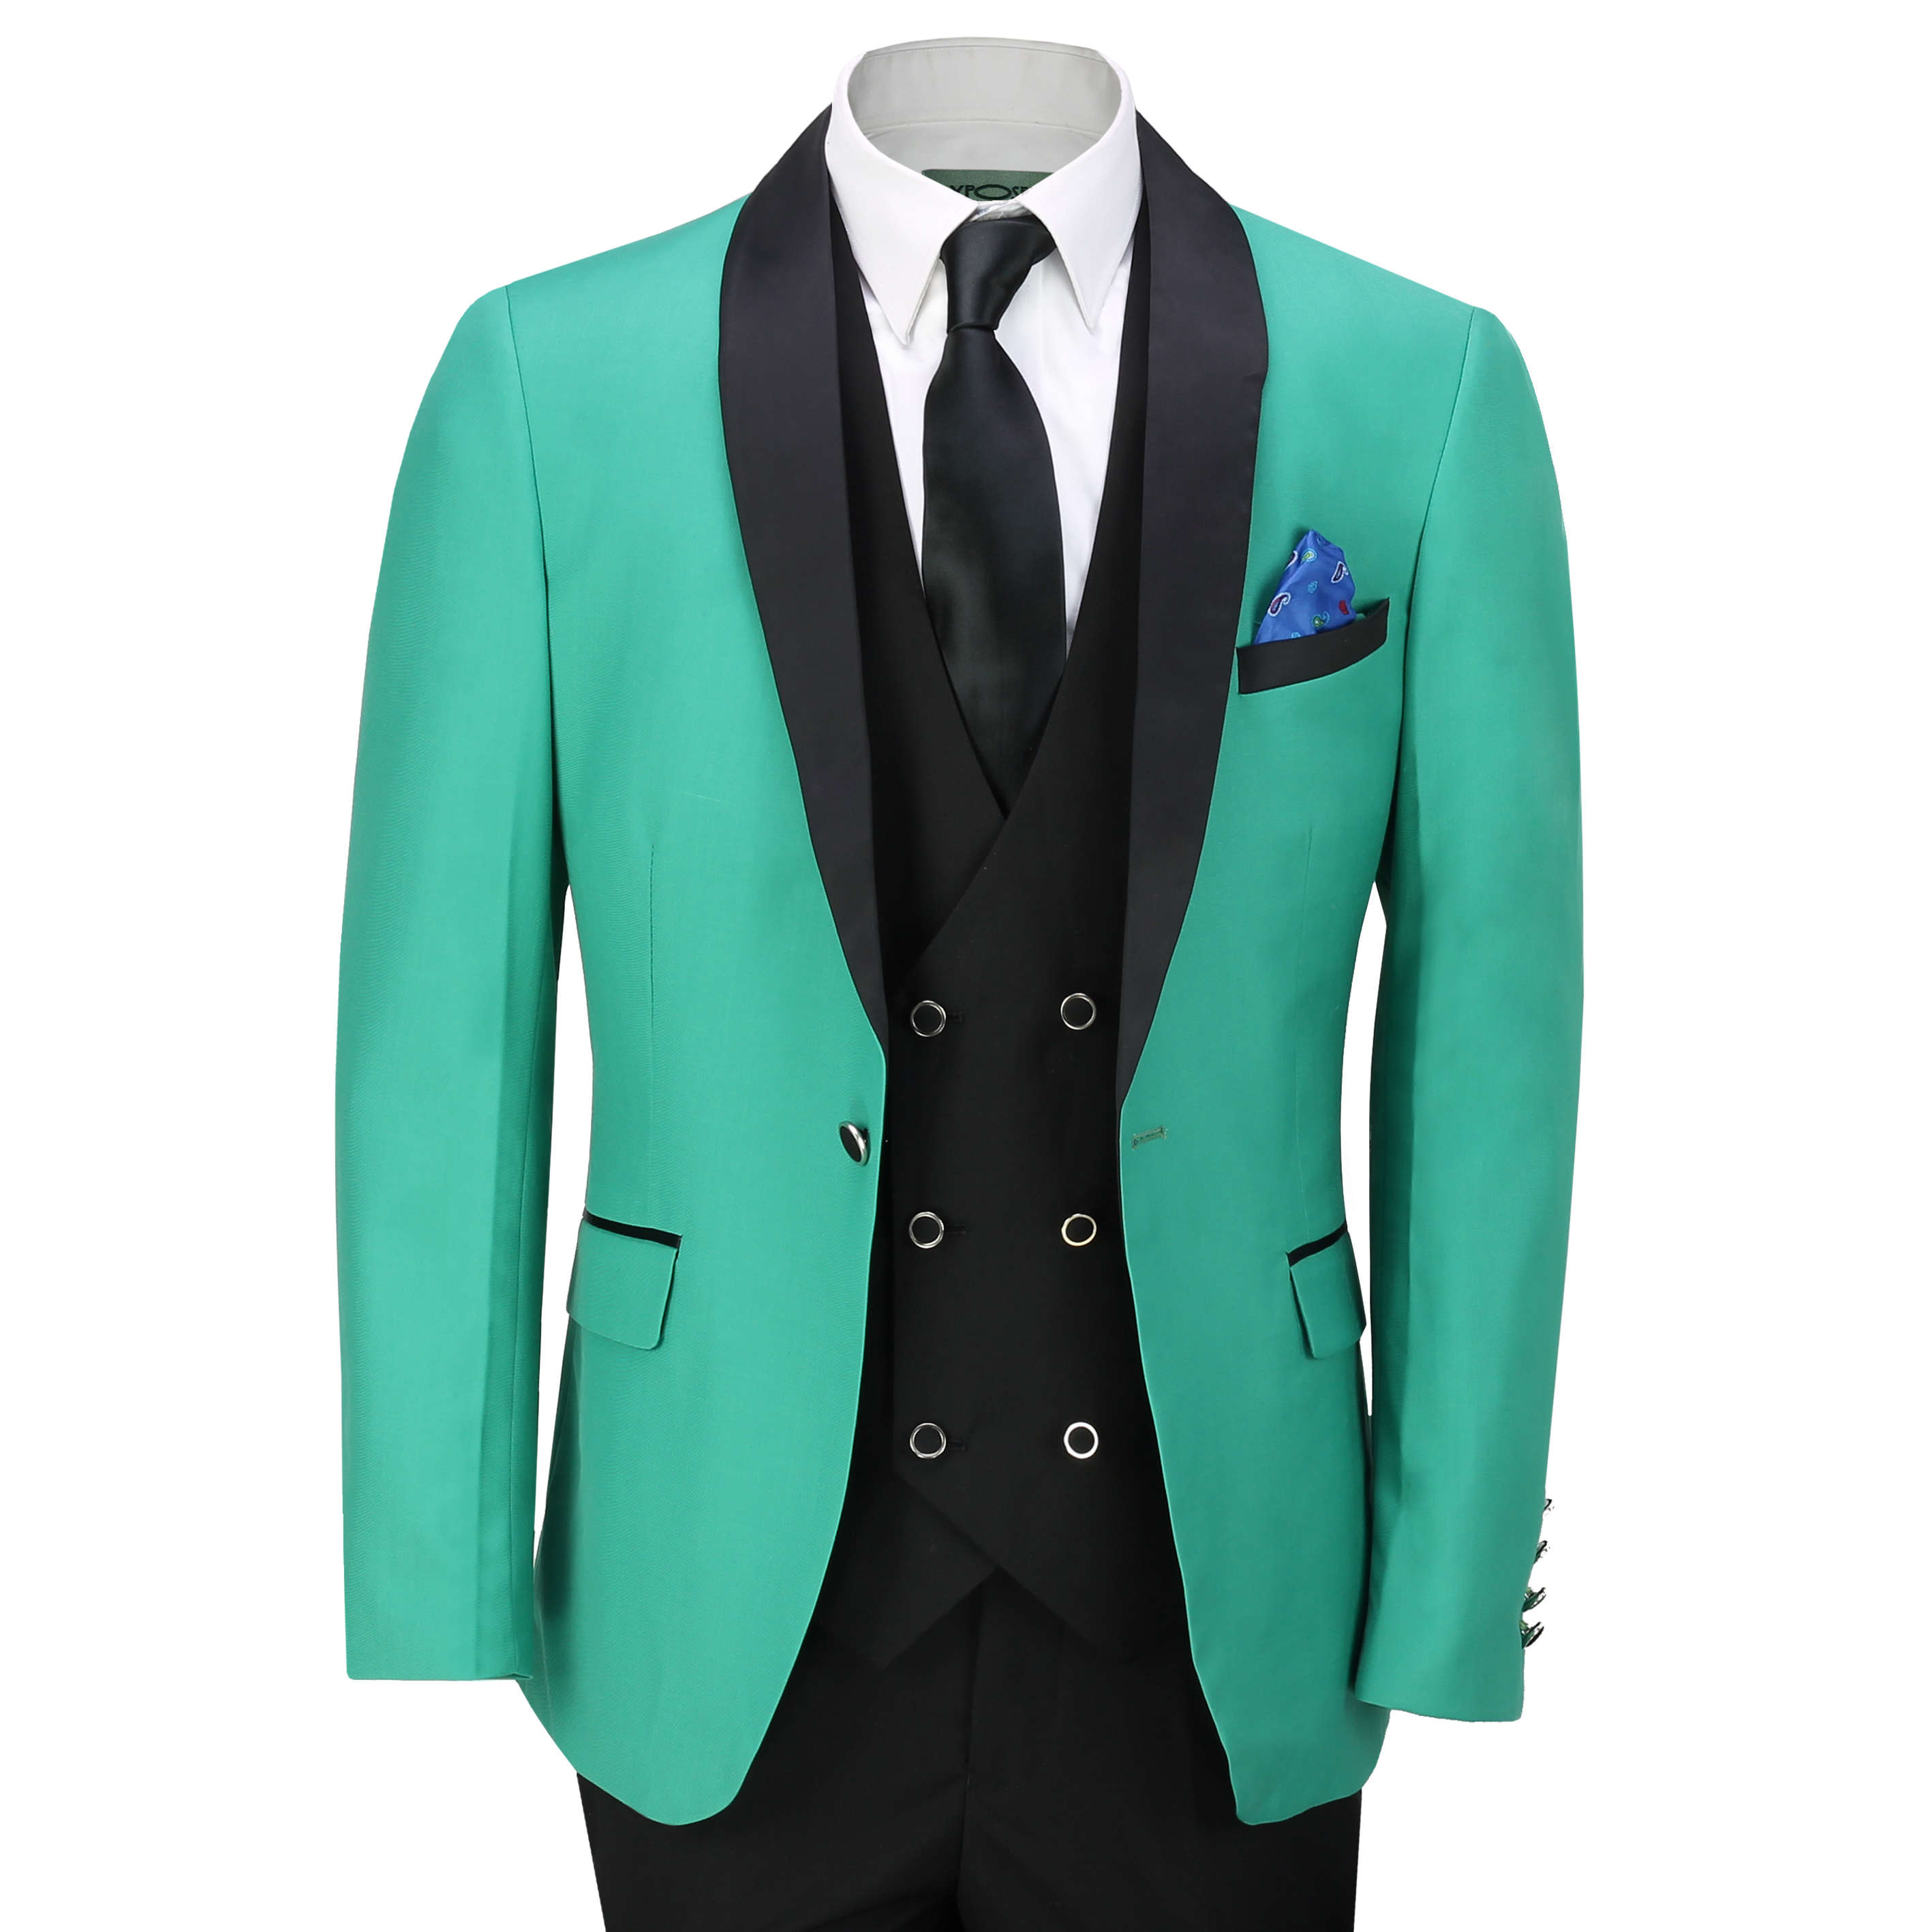 Mens 3 Piece Tuxedo Suit Formal Wedding Green Tailored Fit